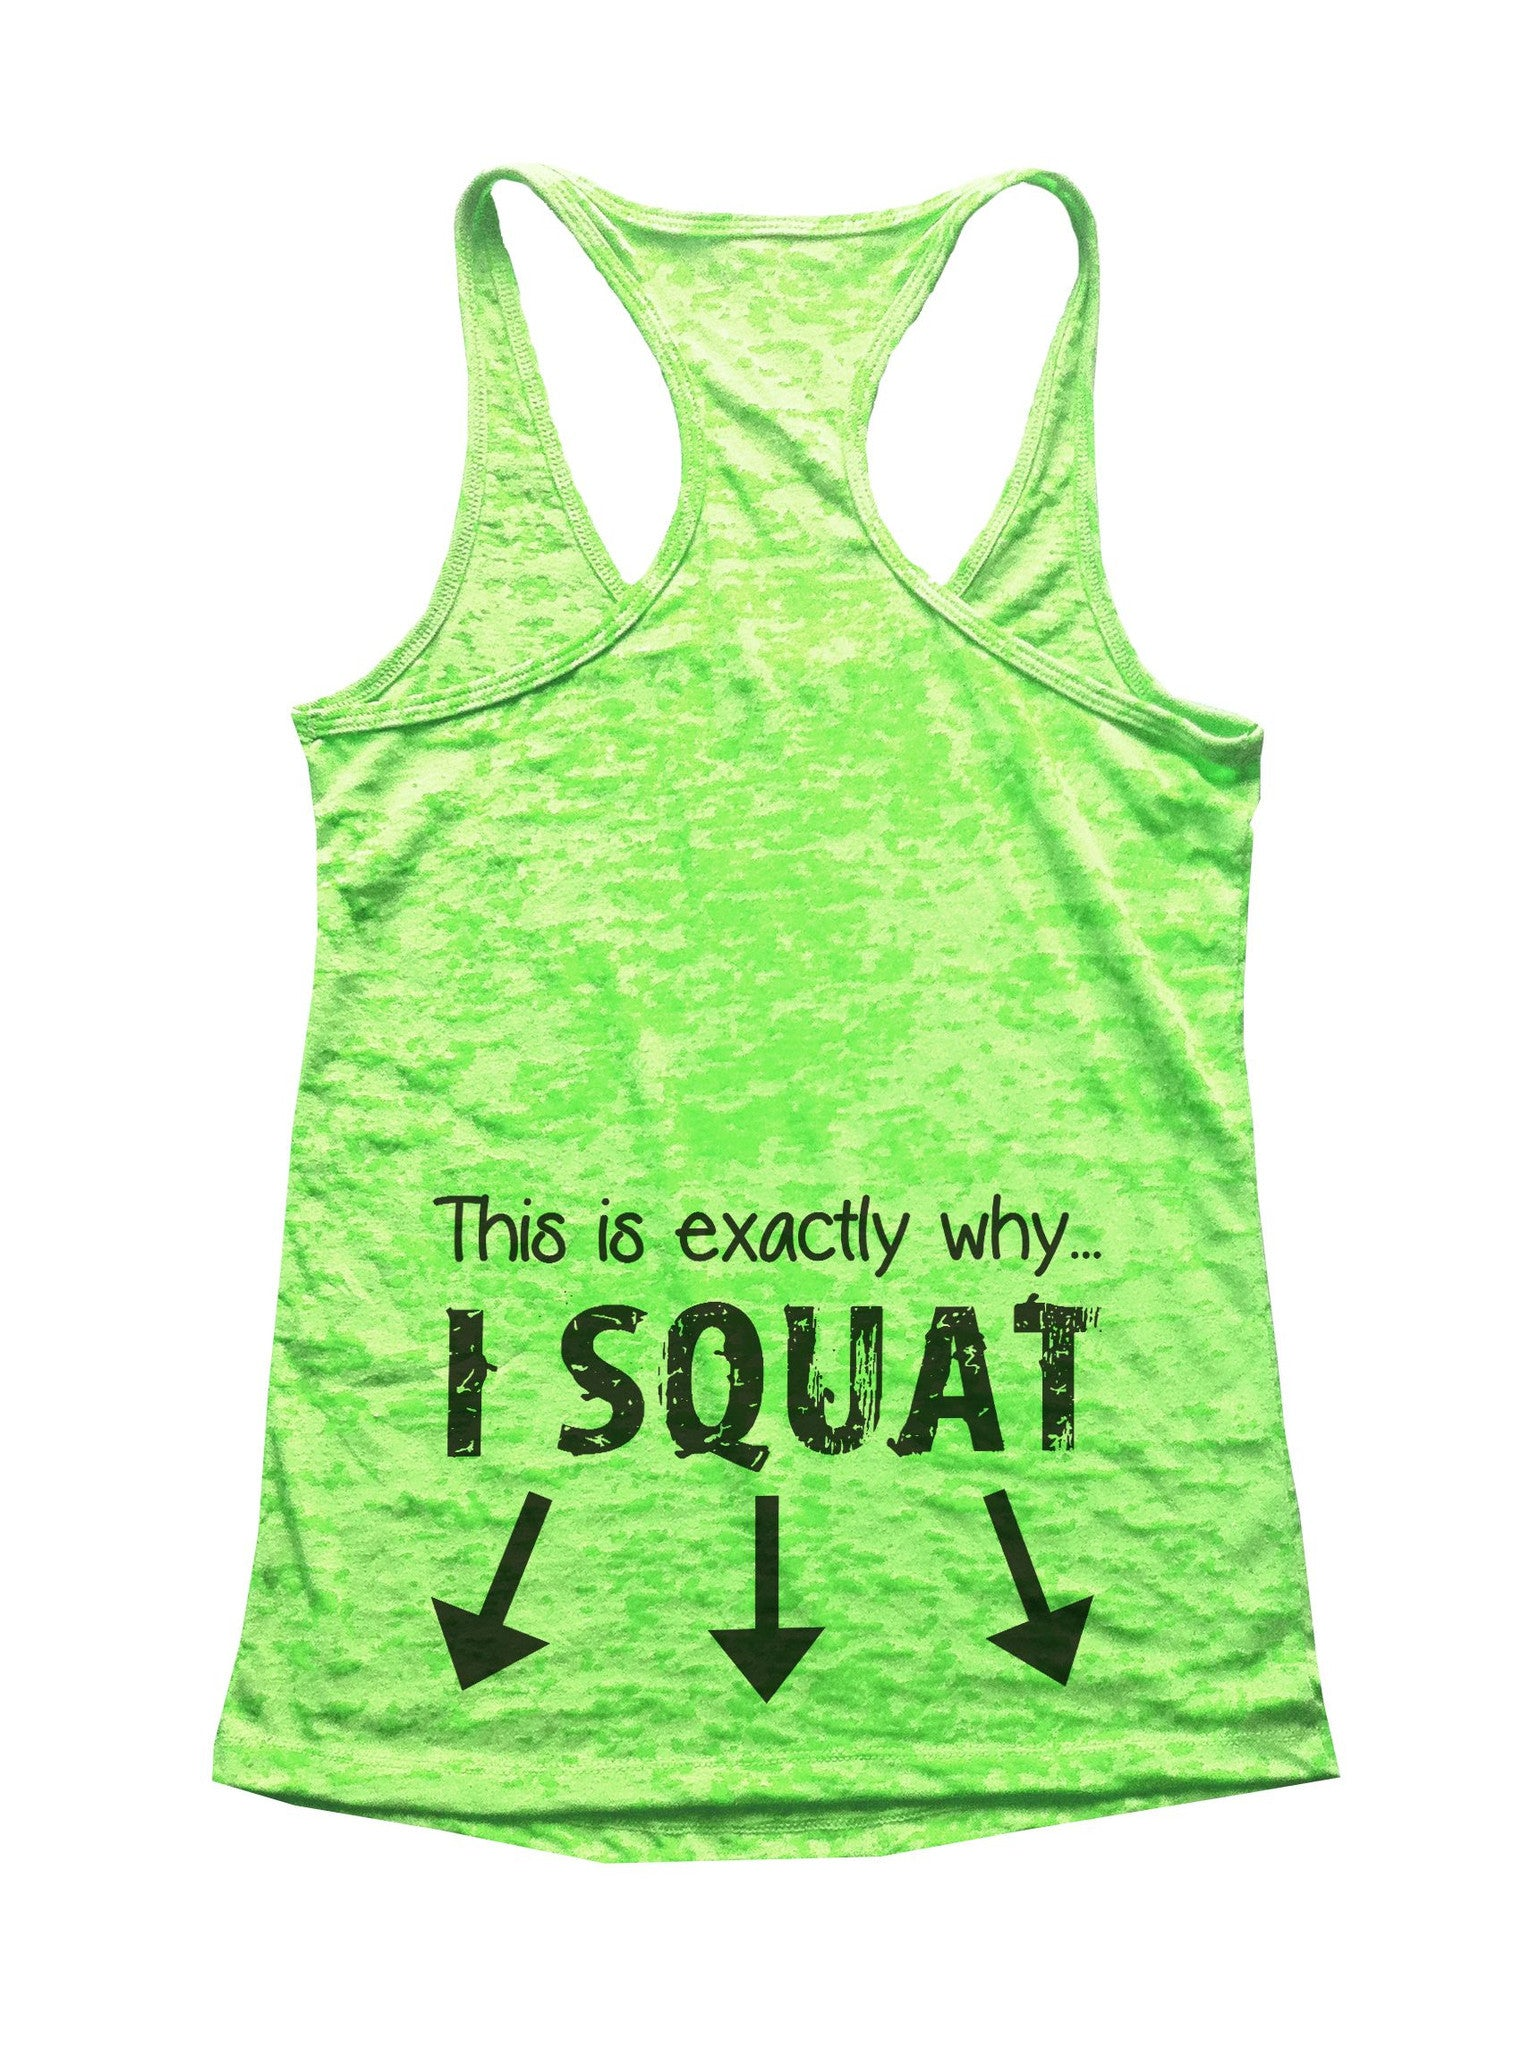 This Is Exactly Why I Squat Burnout Tank Top By BurnoutTankTops.com - 535 - Funny Shirts Tank Tops Burnouts and Triblends  - 3